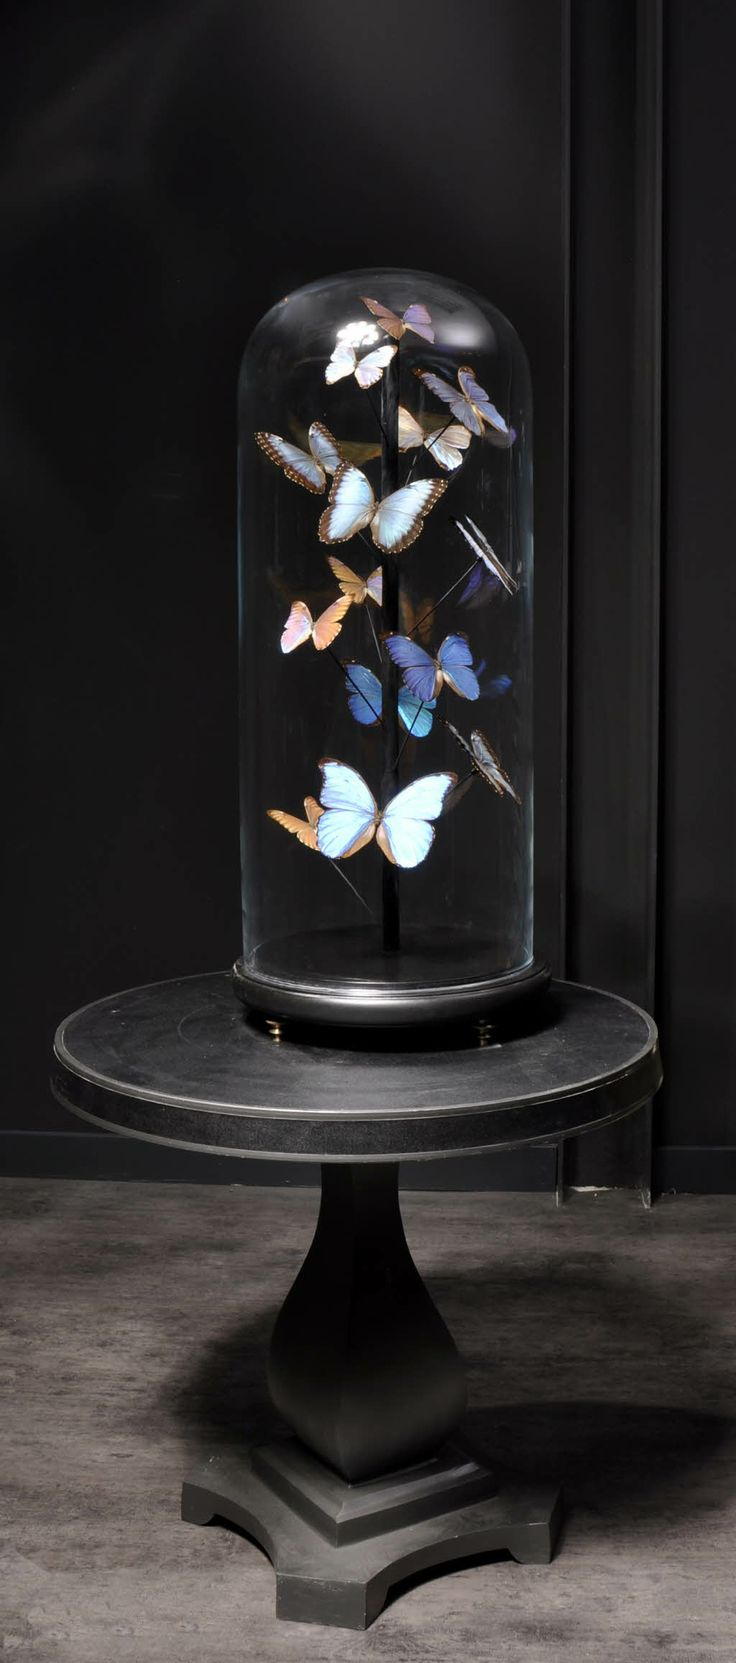 Objet de curiosité-Blue morpho butterflies under glass -★- black